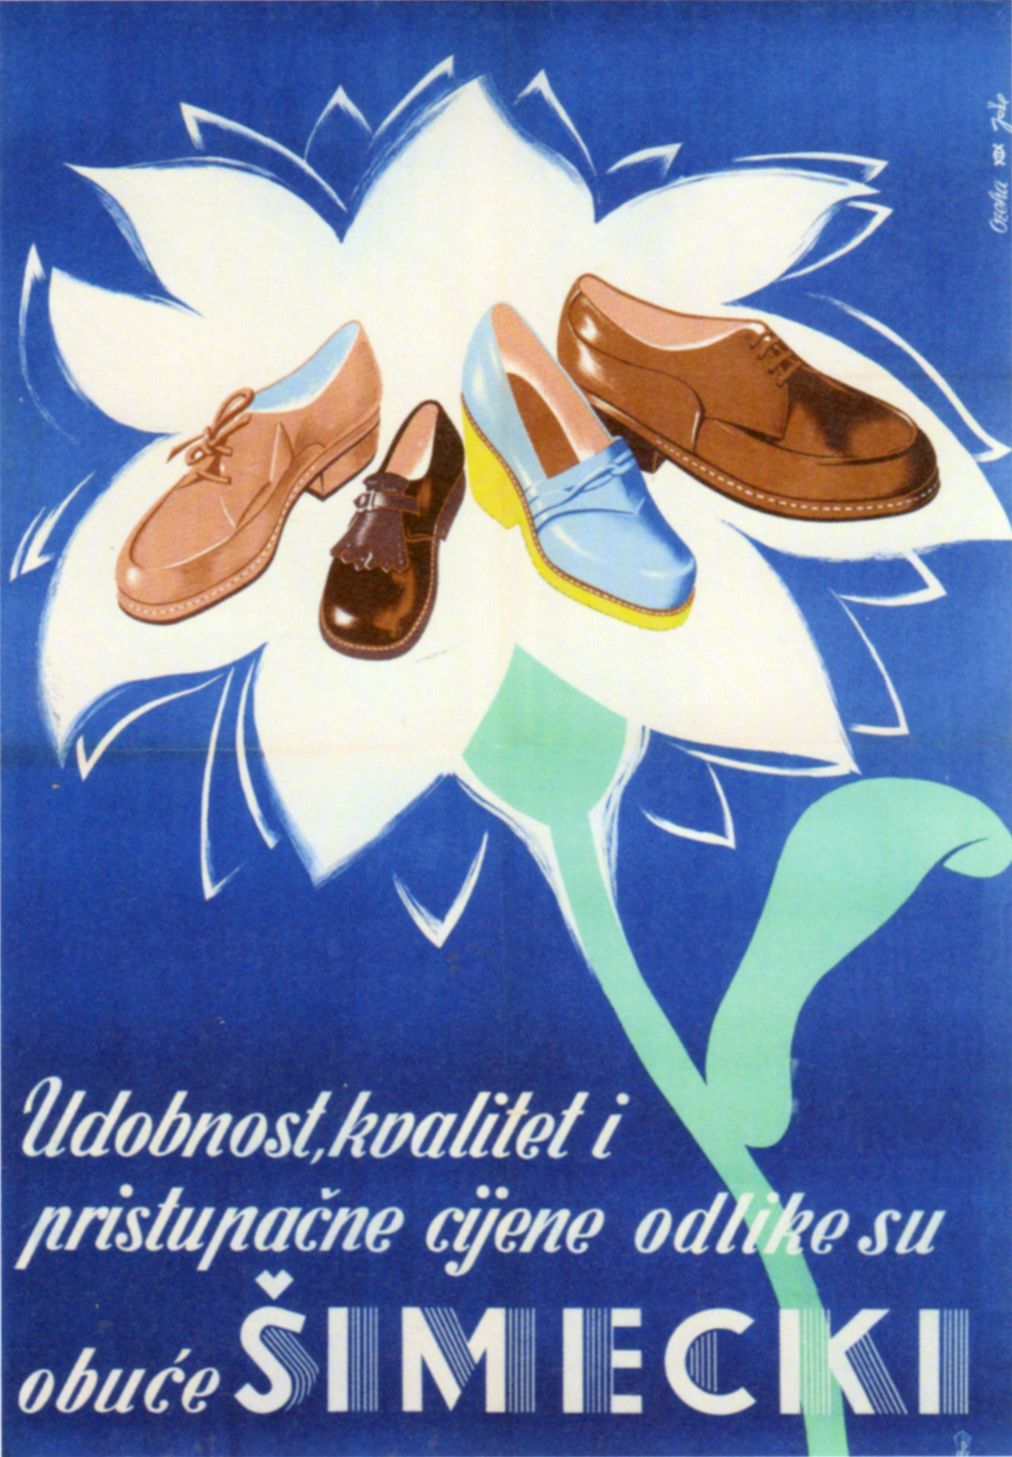 Poster For Simecki Footwear Factory From Zagreb By Zvonimir Faist Ozeha 1955 The Slogan That Accompanied The Campaign City Museum Advertising Material Poster